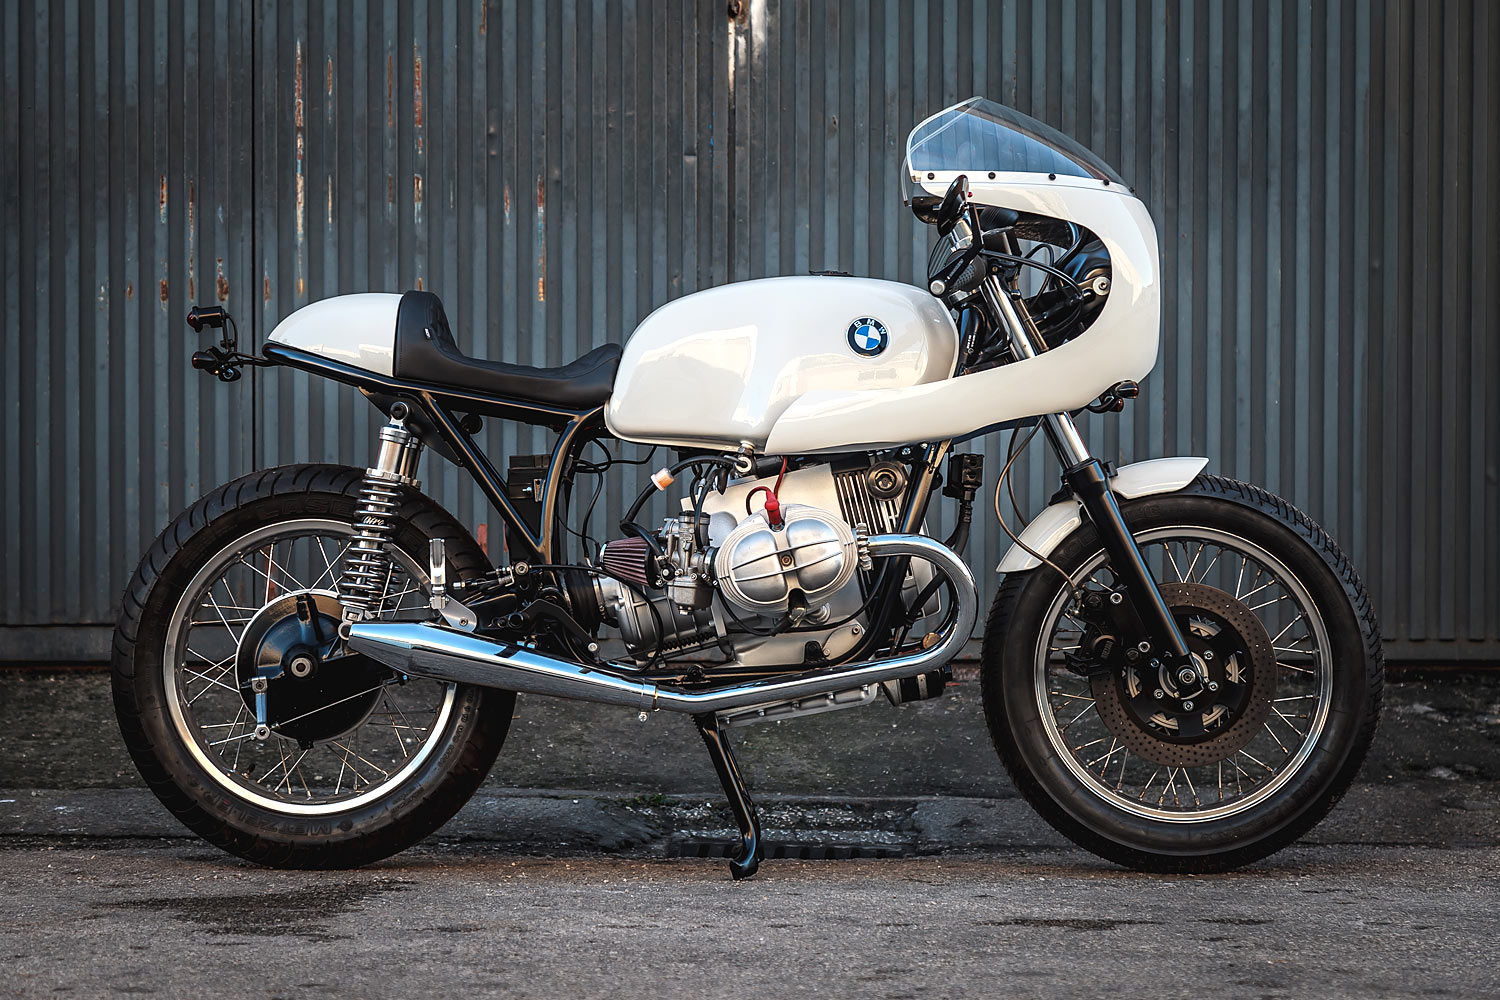 Apex Predator Macco Motor S Great White Bmw R100rs Cafe Racer